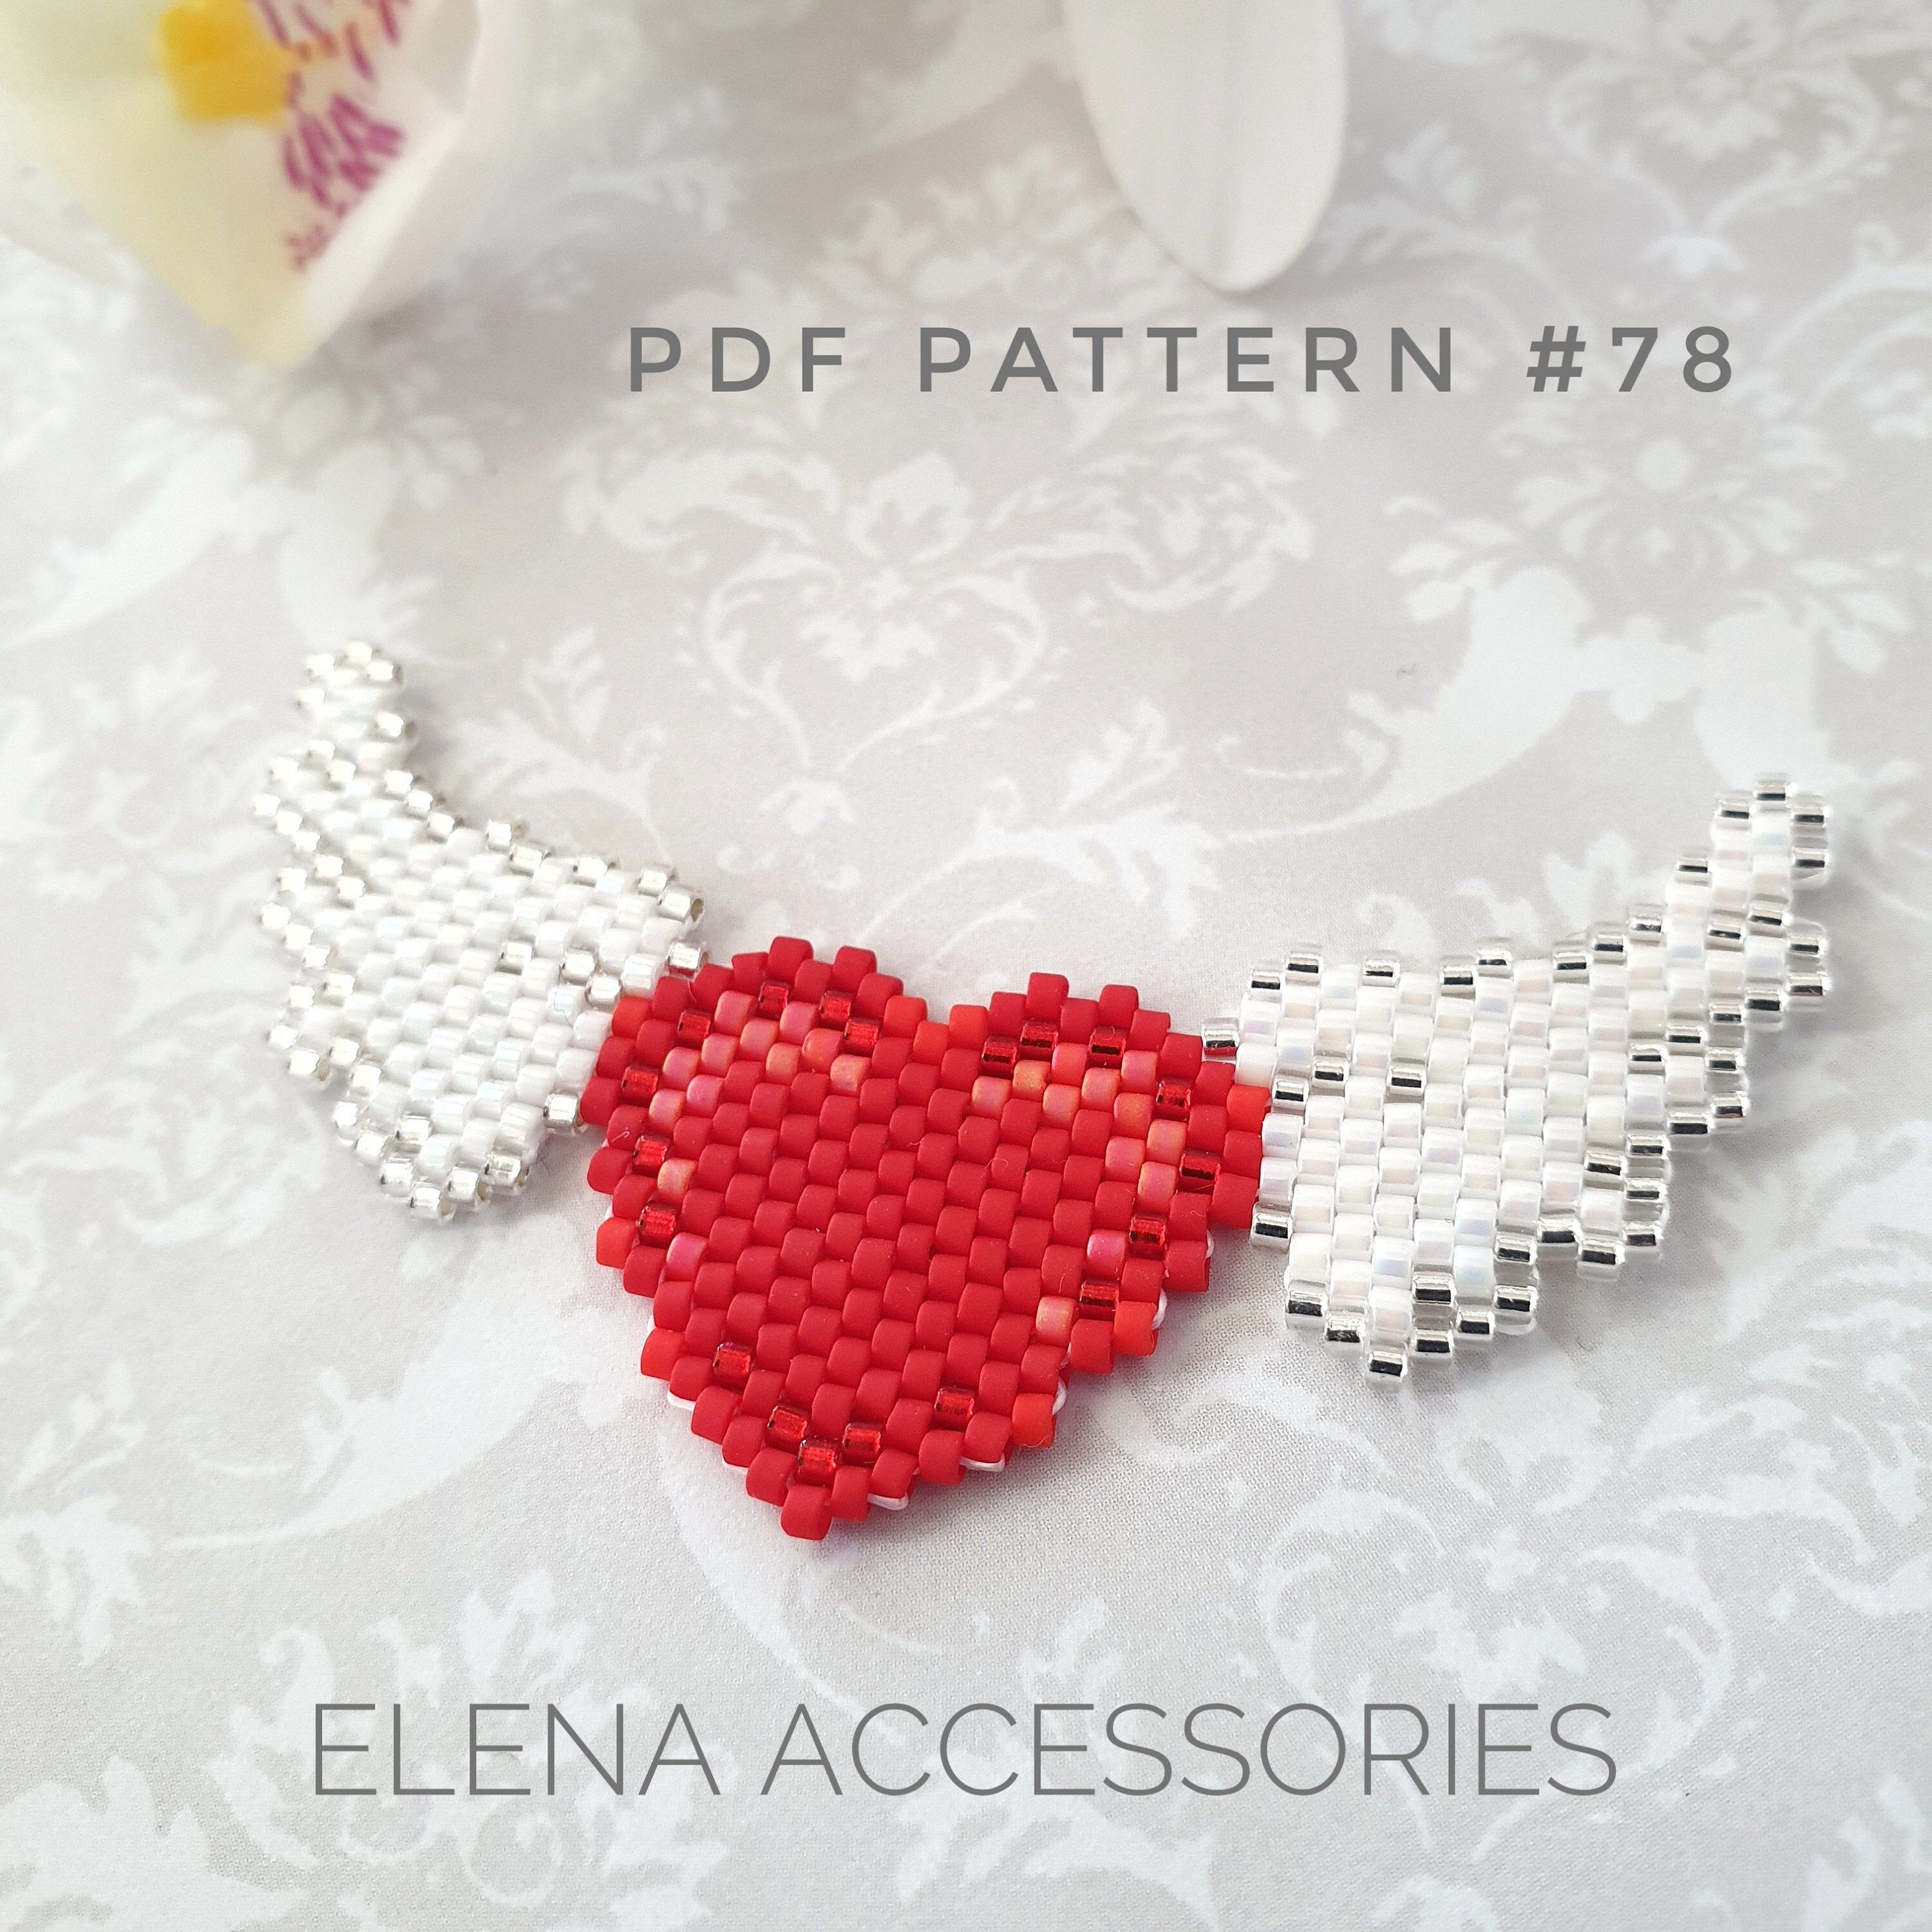 Heart with wings Valentine's Day brooch necklace brick stitch PDF pattern for miyuki delika seed beads beading pattern #78-#beading #beads #brick #brooch #Day #delika #heart #miyuki #necklace #pattern #pdf #seed #stitch #valentine #Valentines #wings